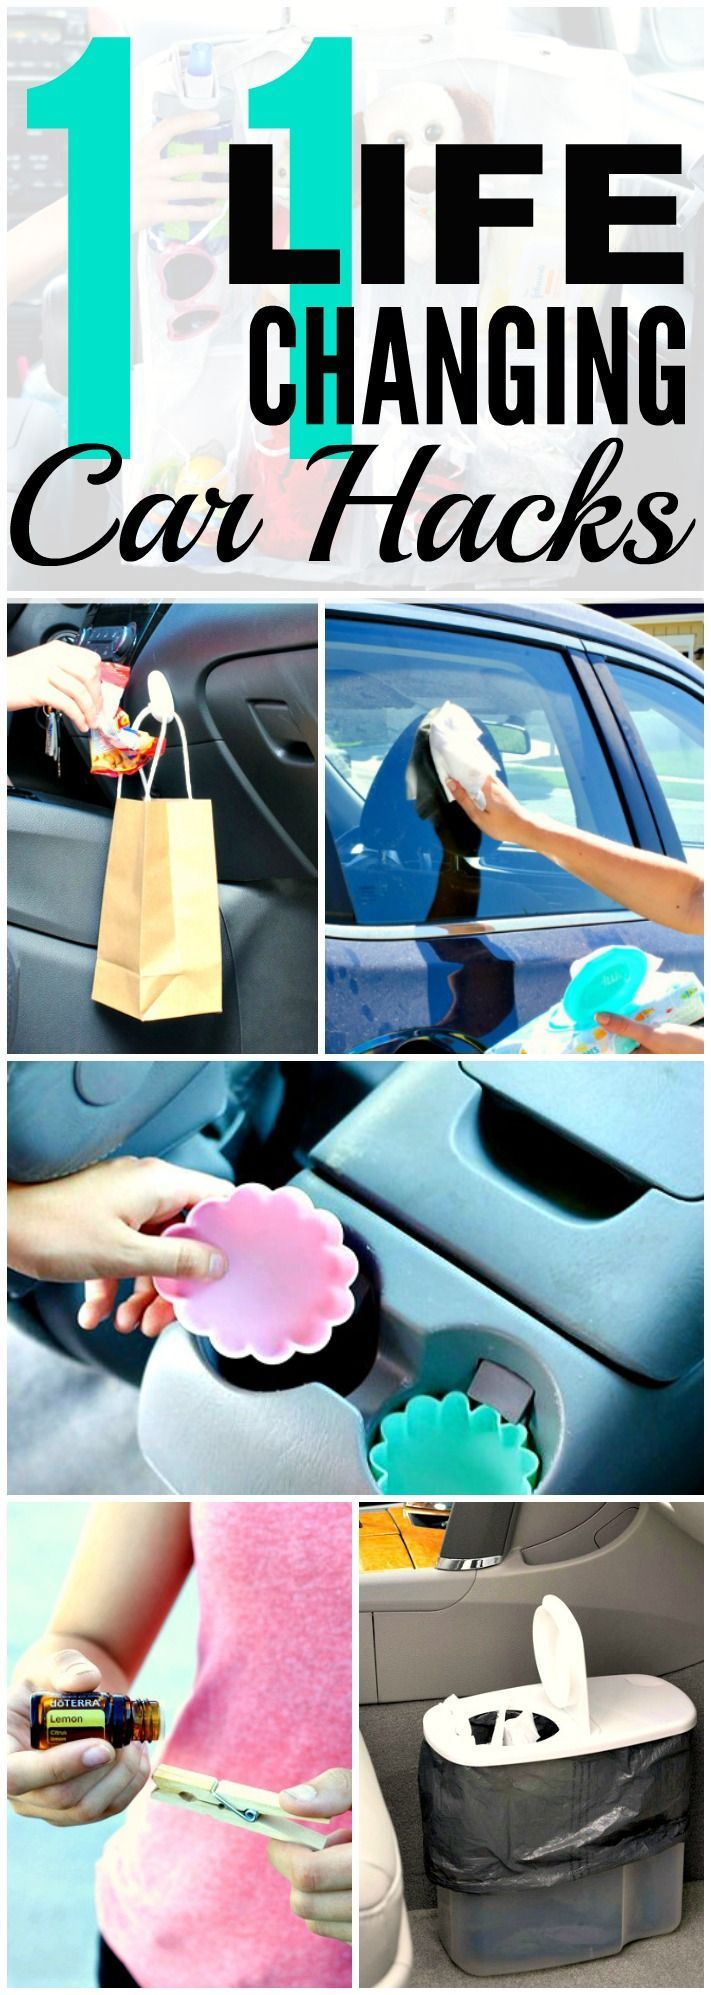 Car Cleaning Hacks You'll Wish You'd Known Sooner These 10 life changing car hack are THE BEST! I'm so happy I found these AWESOME tips! Now I can keep my car clean and organized! Definitely repinning for later!Days Like These  Days Like These may refer to: